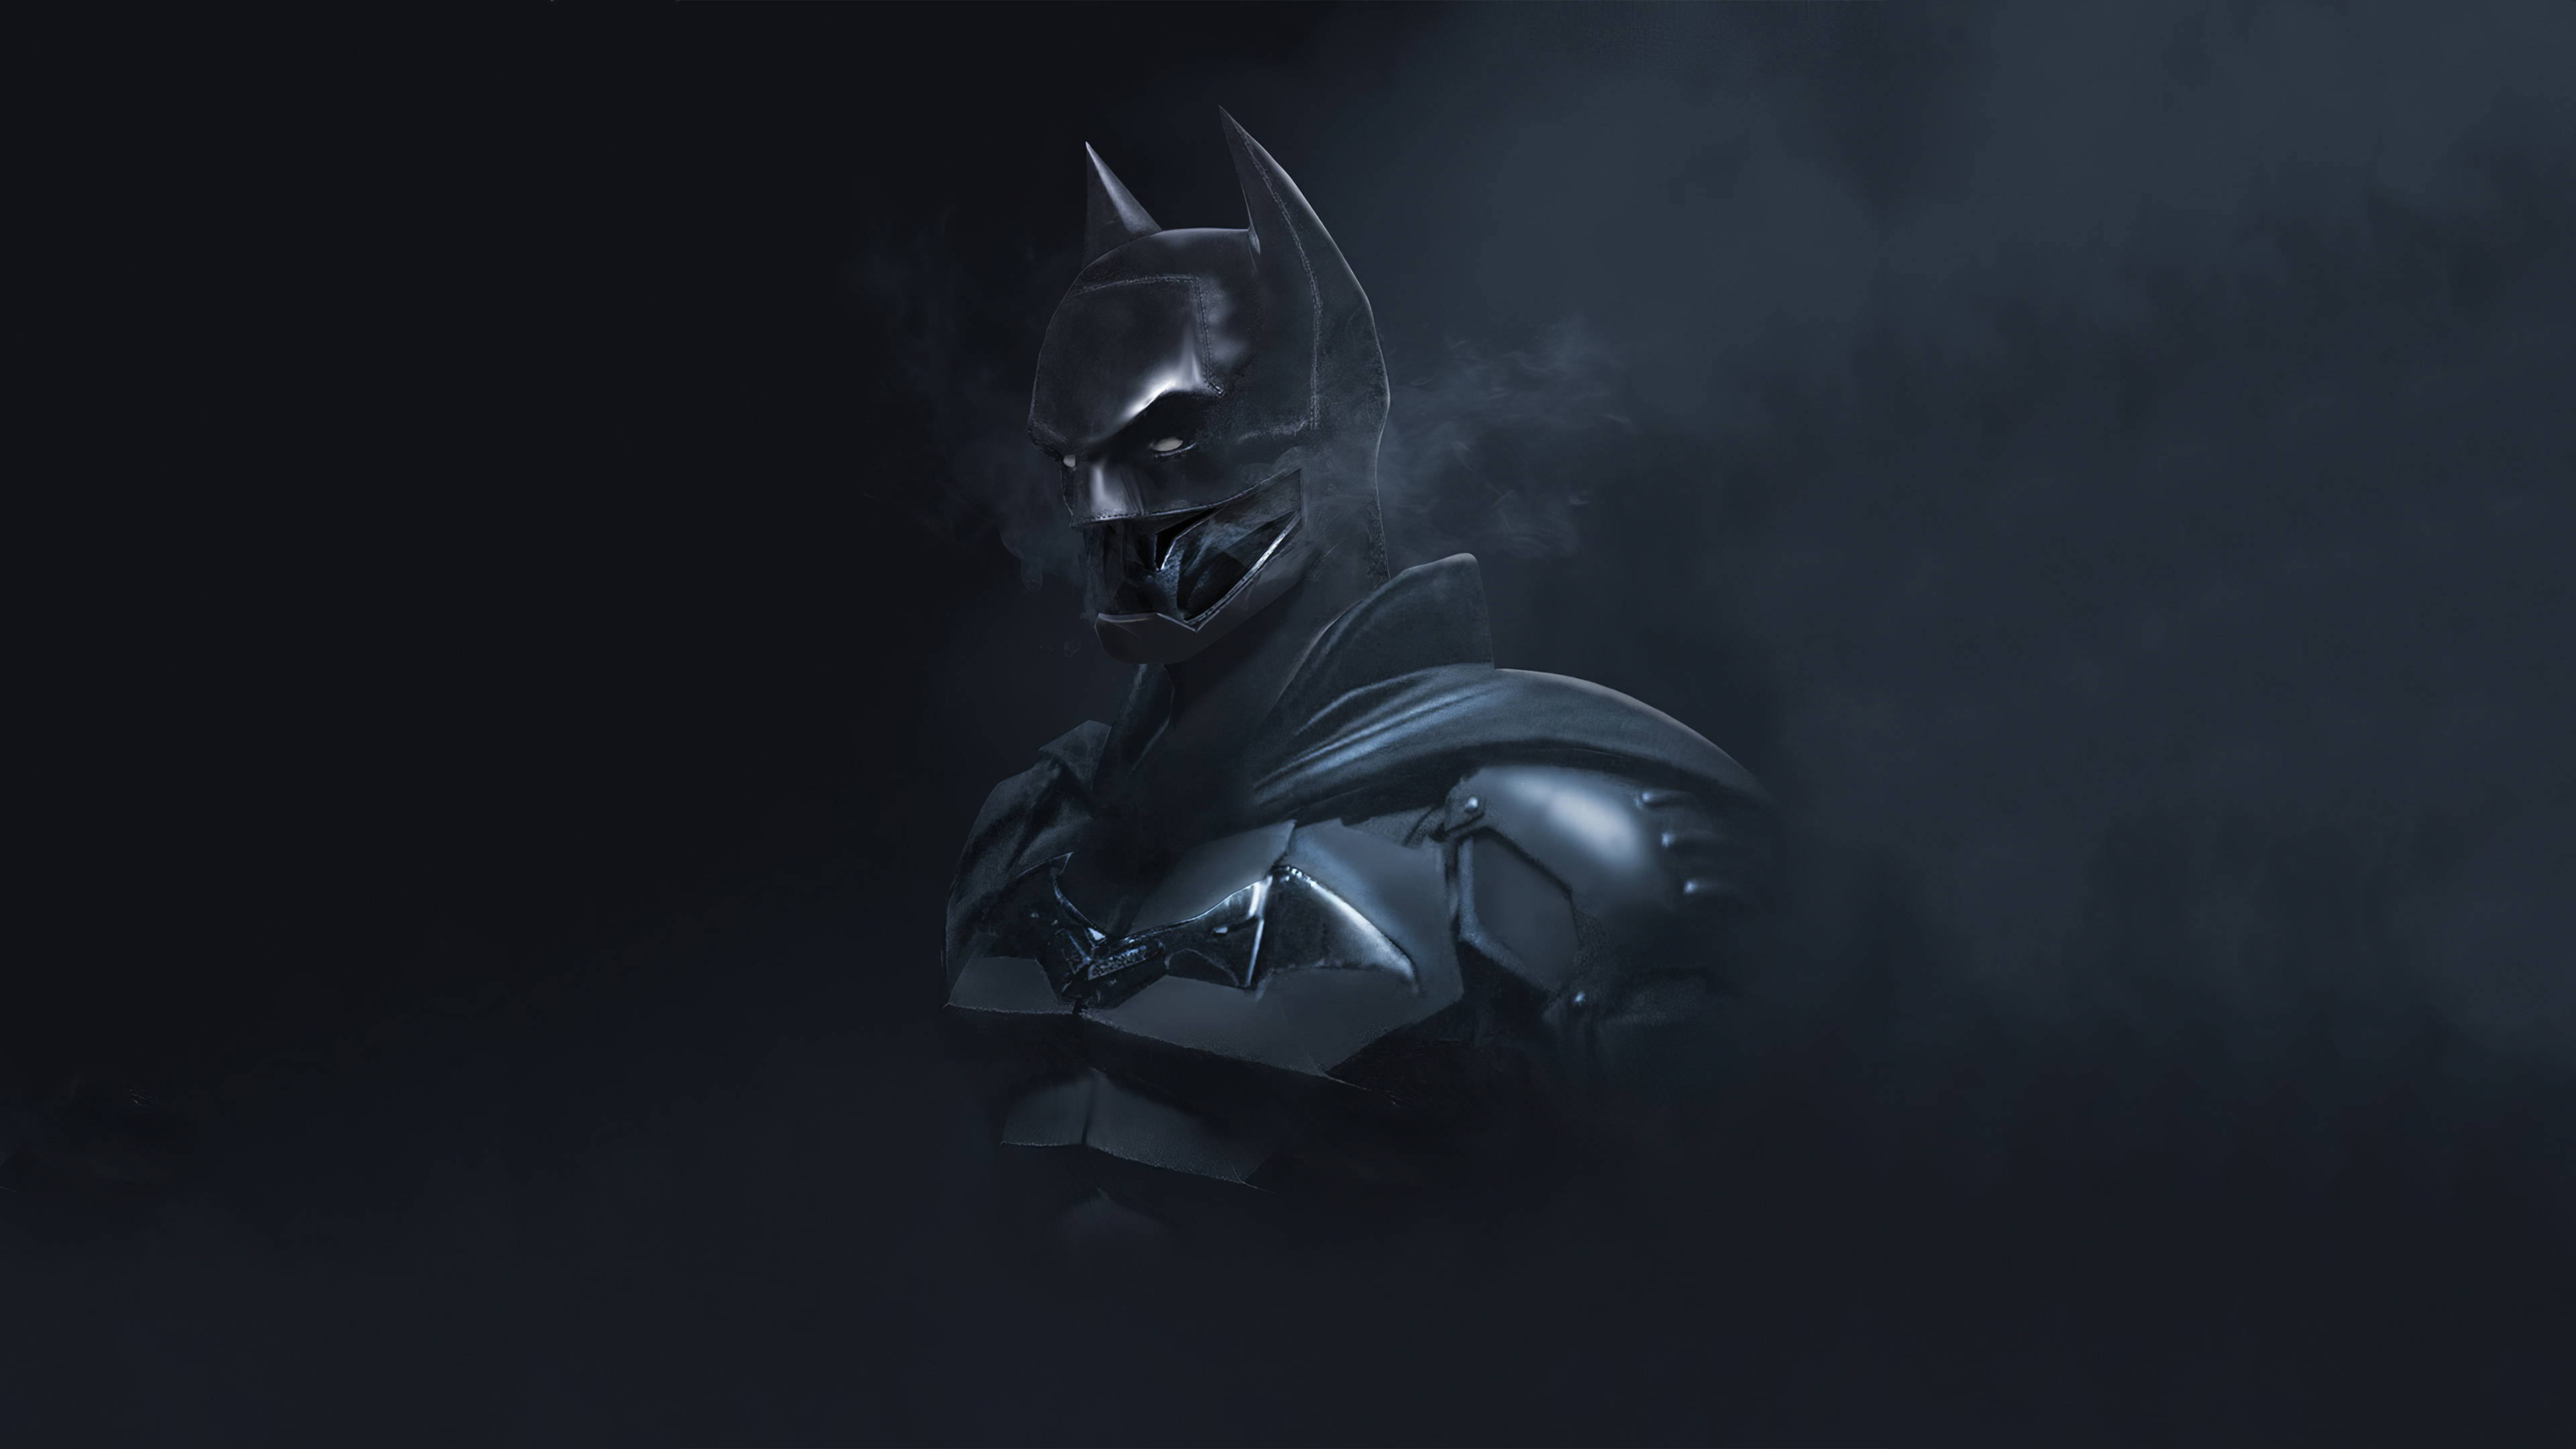 New Batman Suit 4k Wallpaper Hd Superheroes 4k Wallpapers Images Photos And Background